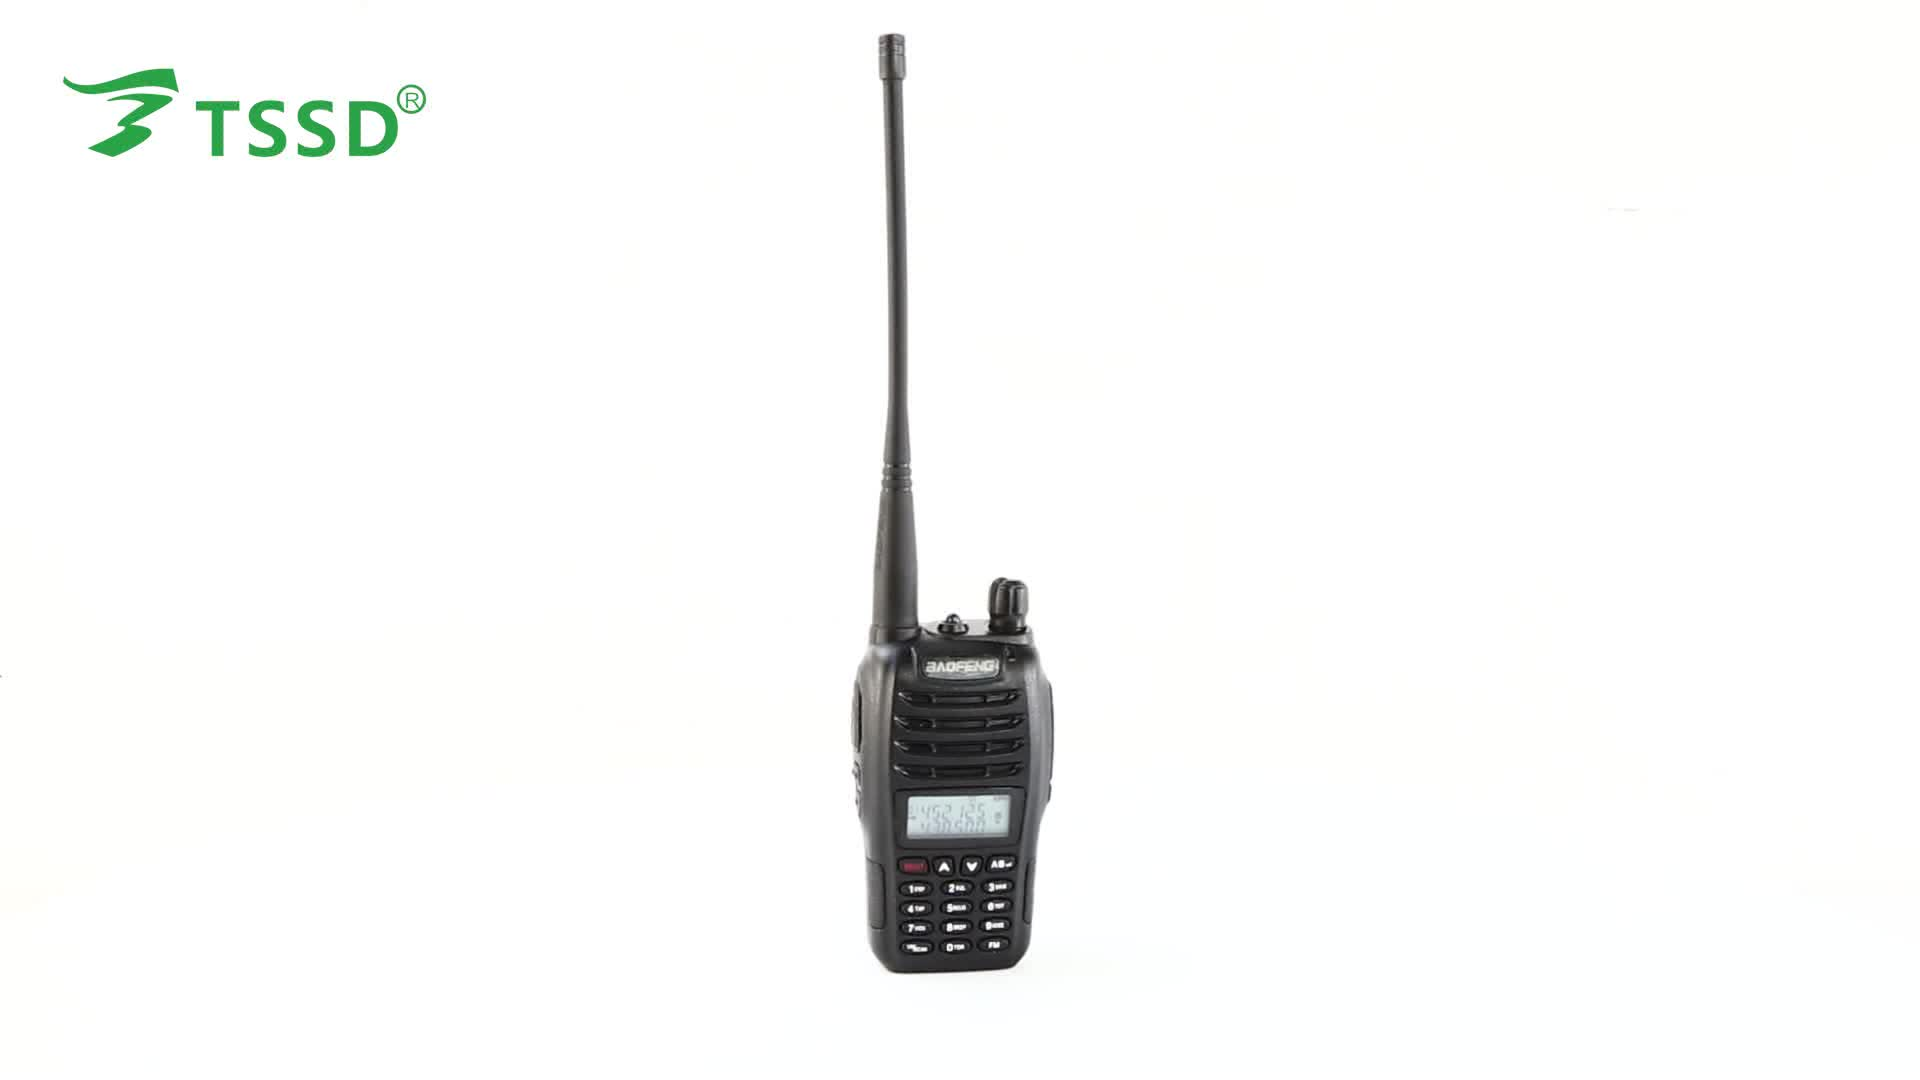 Baofeng Uv B6 Dual Band Walkie Talkie Uhf Amp Vhf Fm